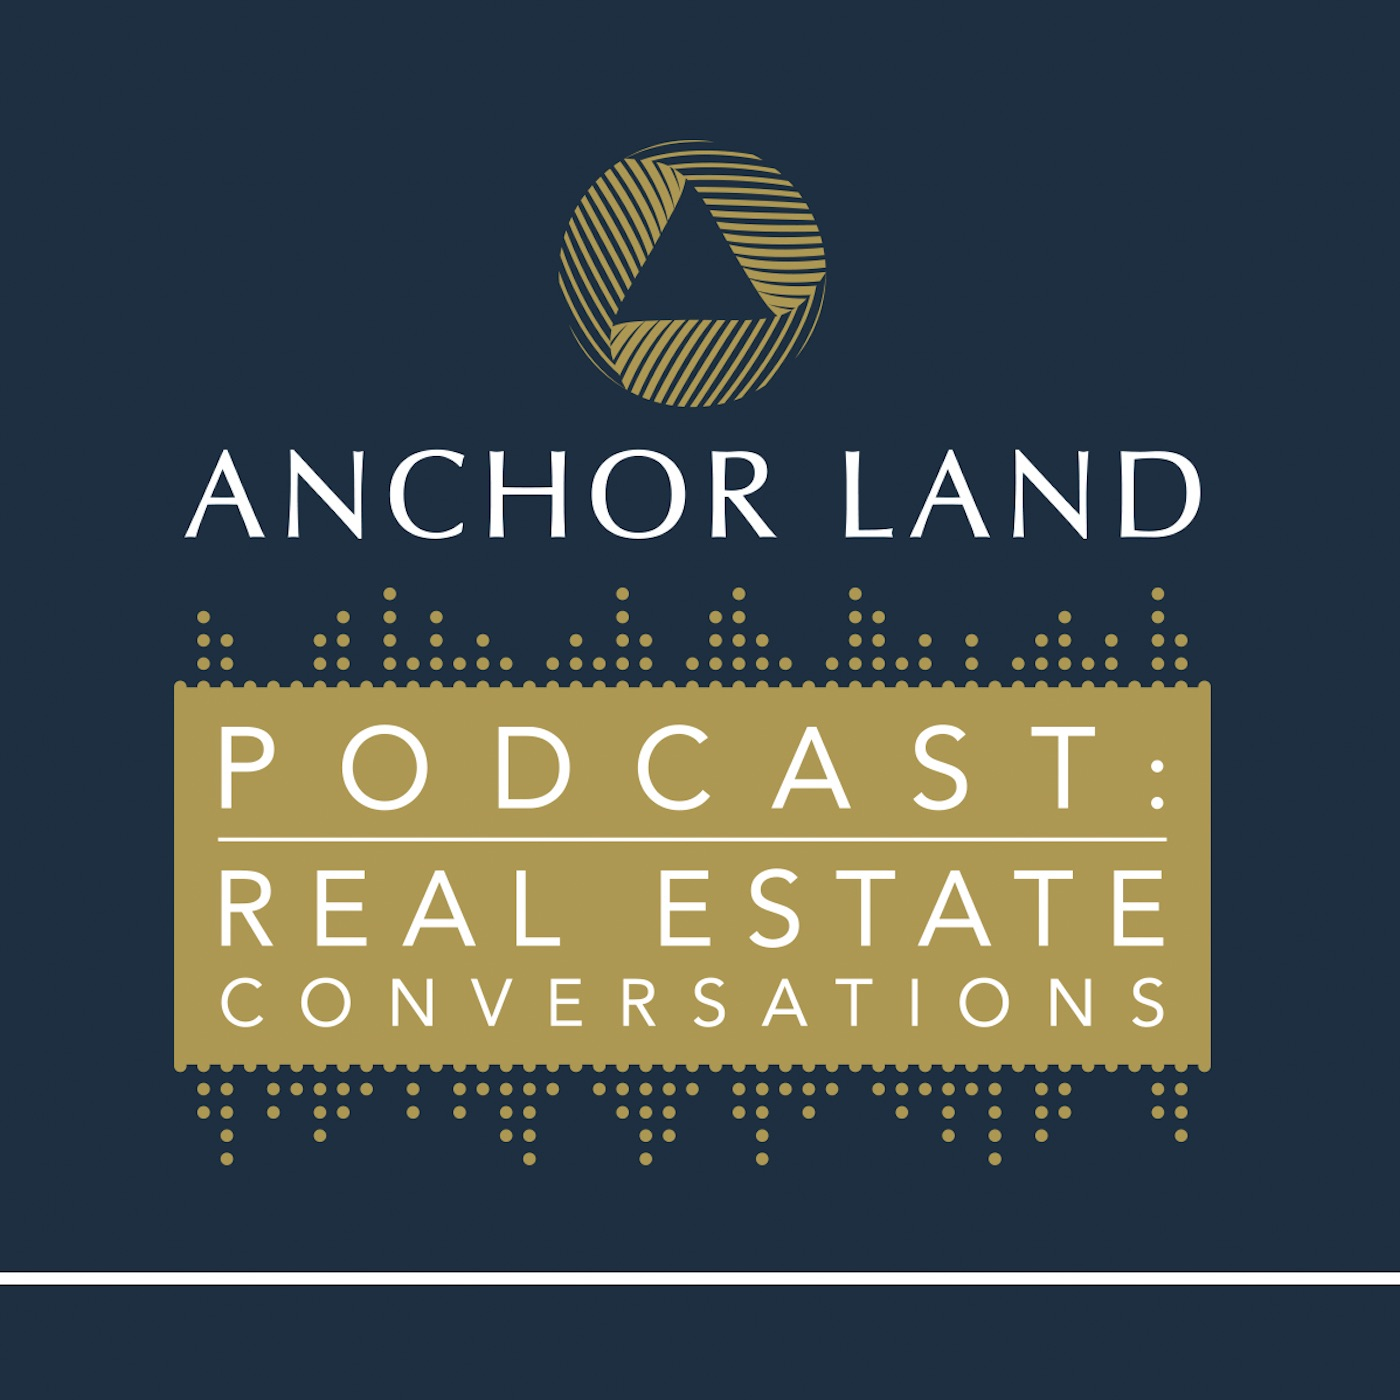 Anchor Land Podcast : Real Estate Conversations